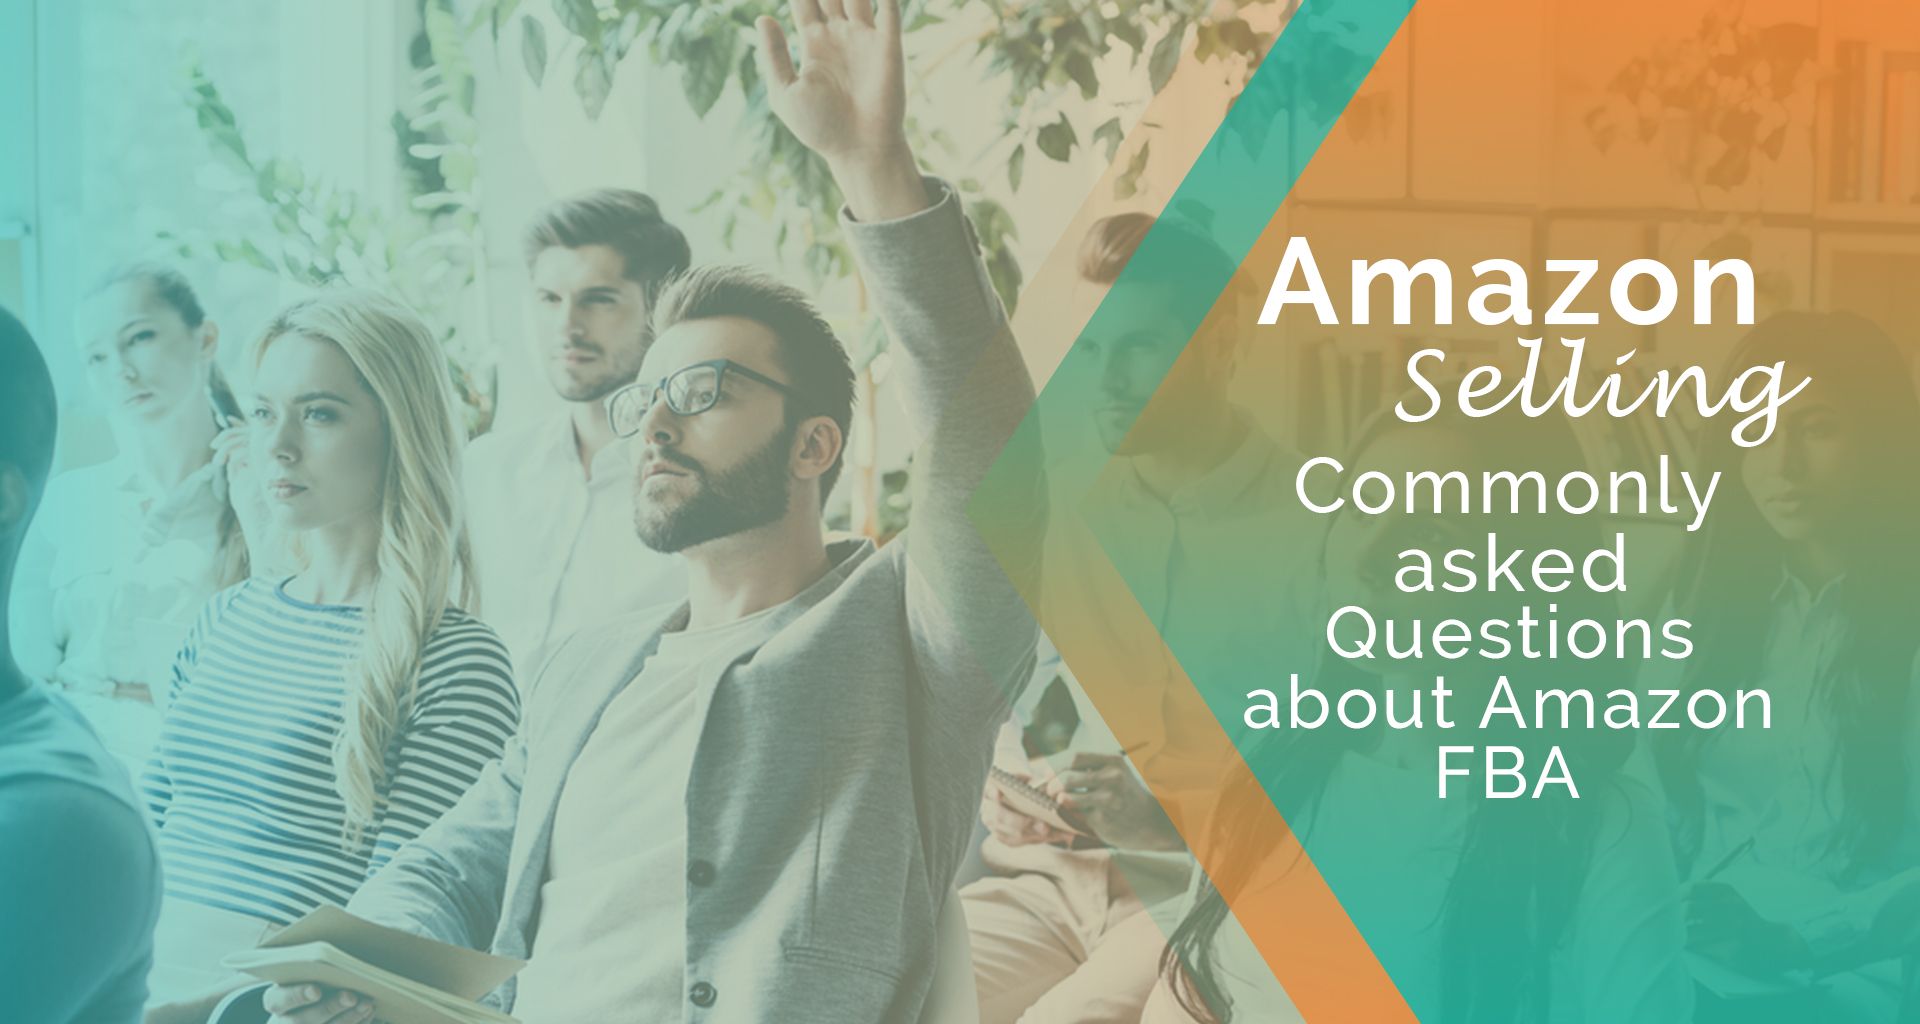 Commonly Asked Questions About Amazon FBA